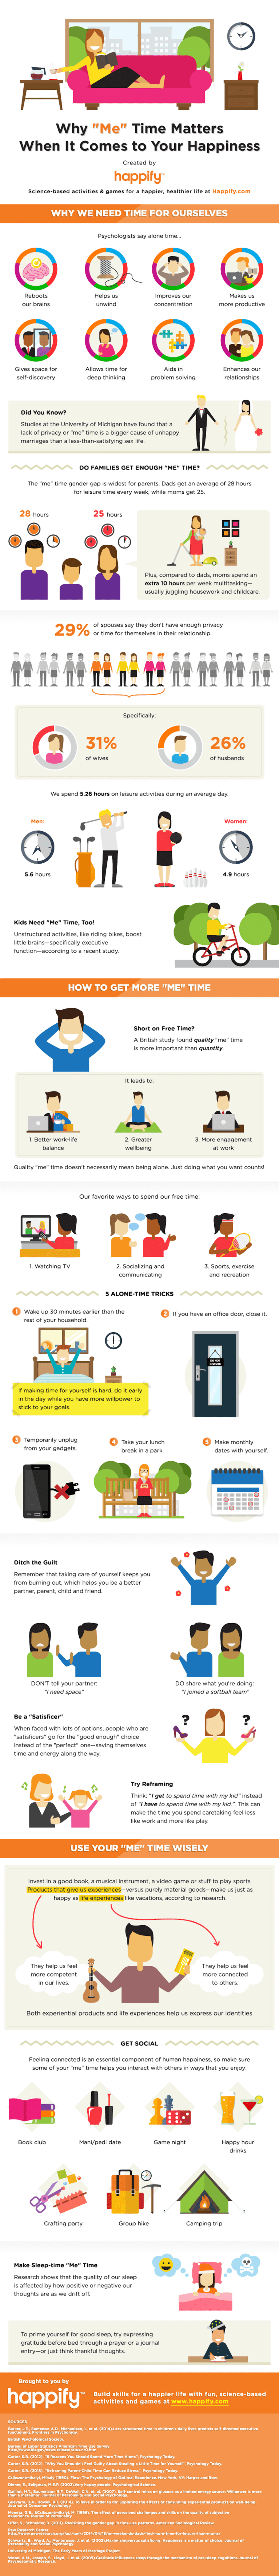 "Why ""Me Time"" Is So Important For Happiness (Infographic)"